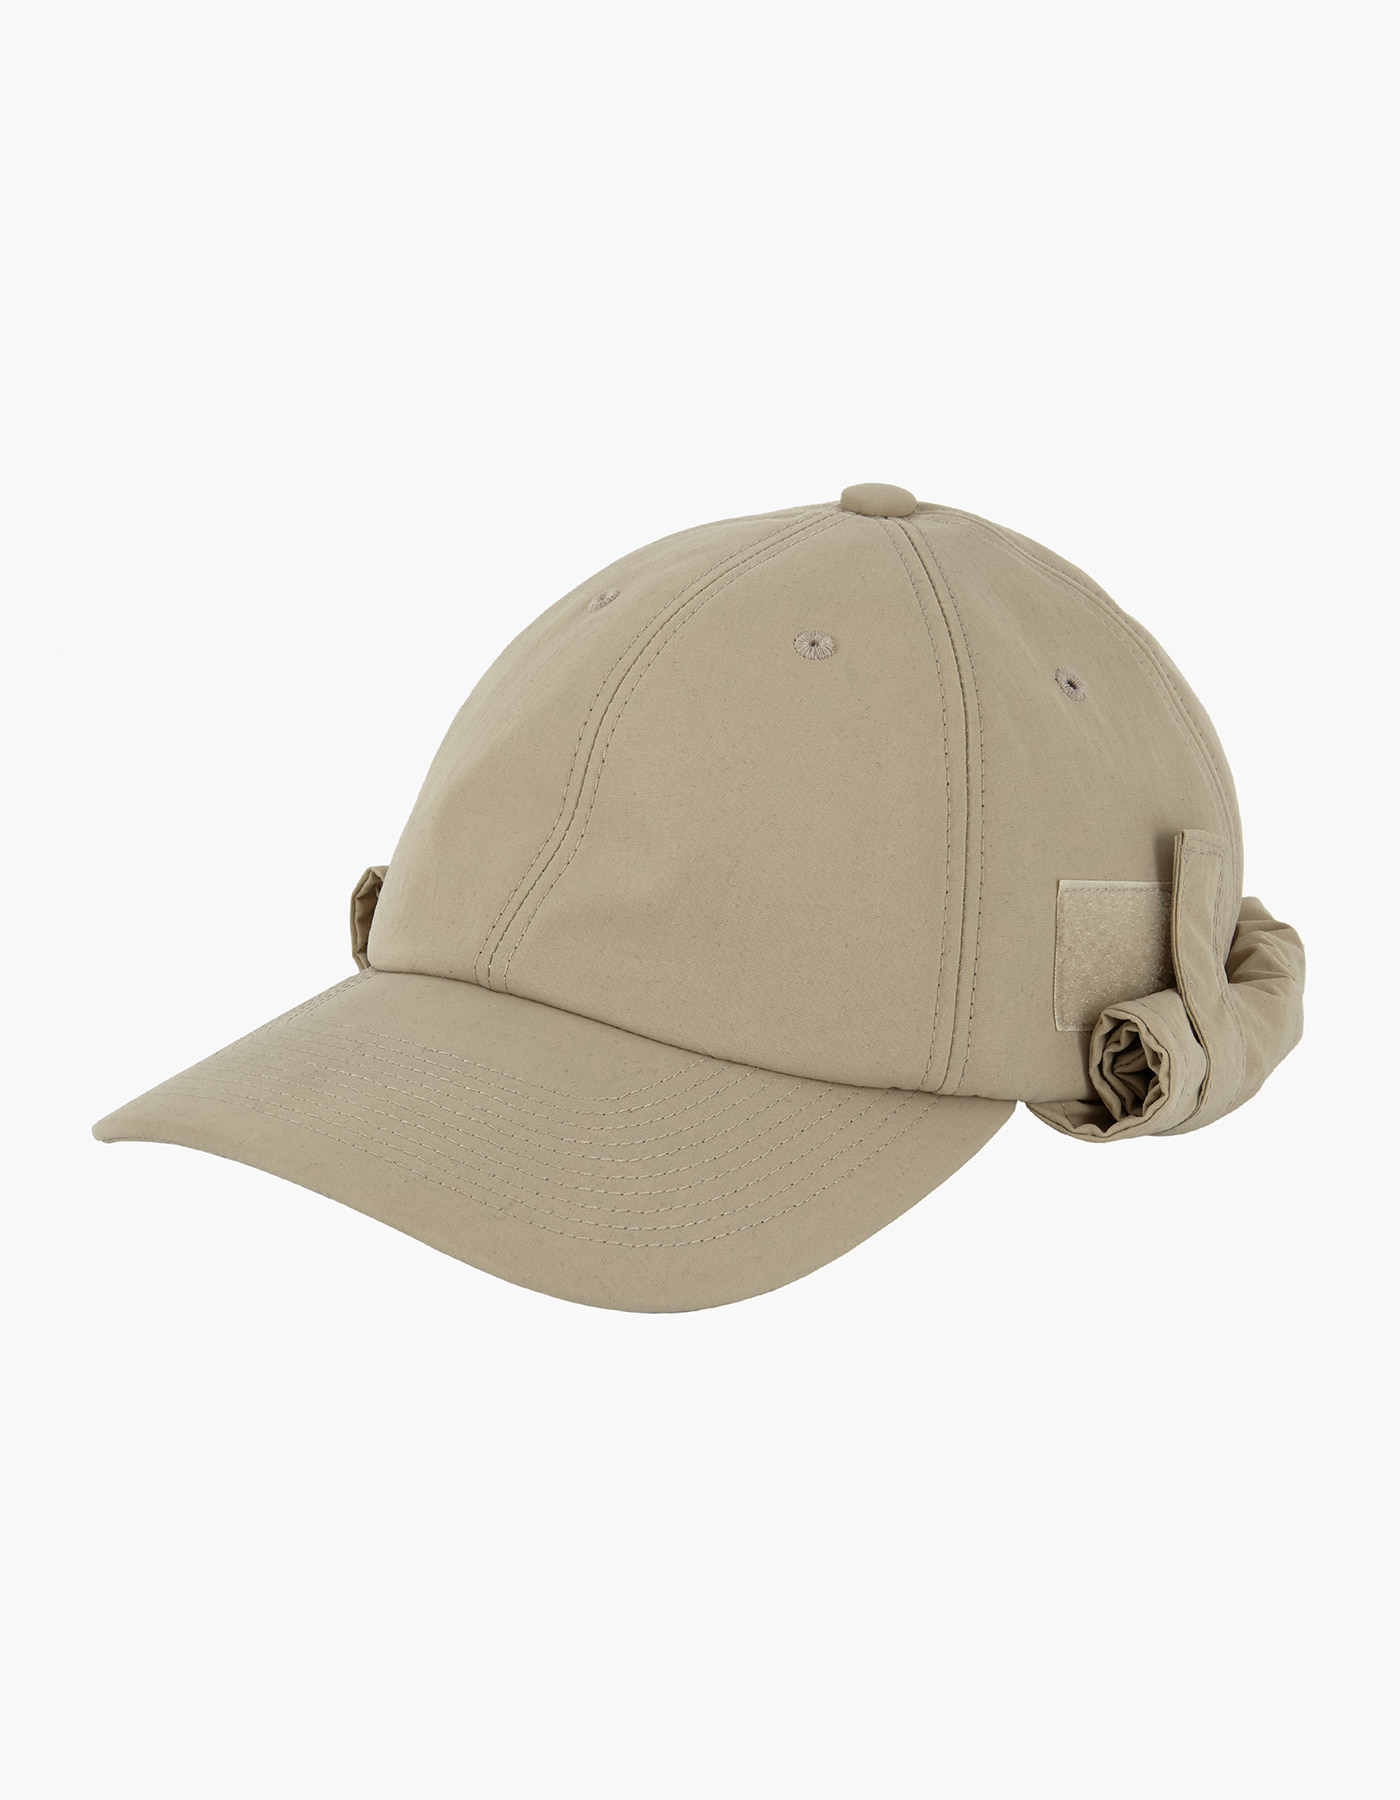 6 PANEL FLY FISHING CAP / BEIGE